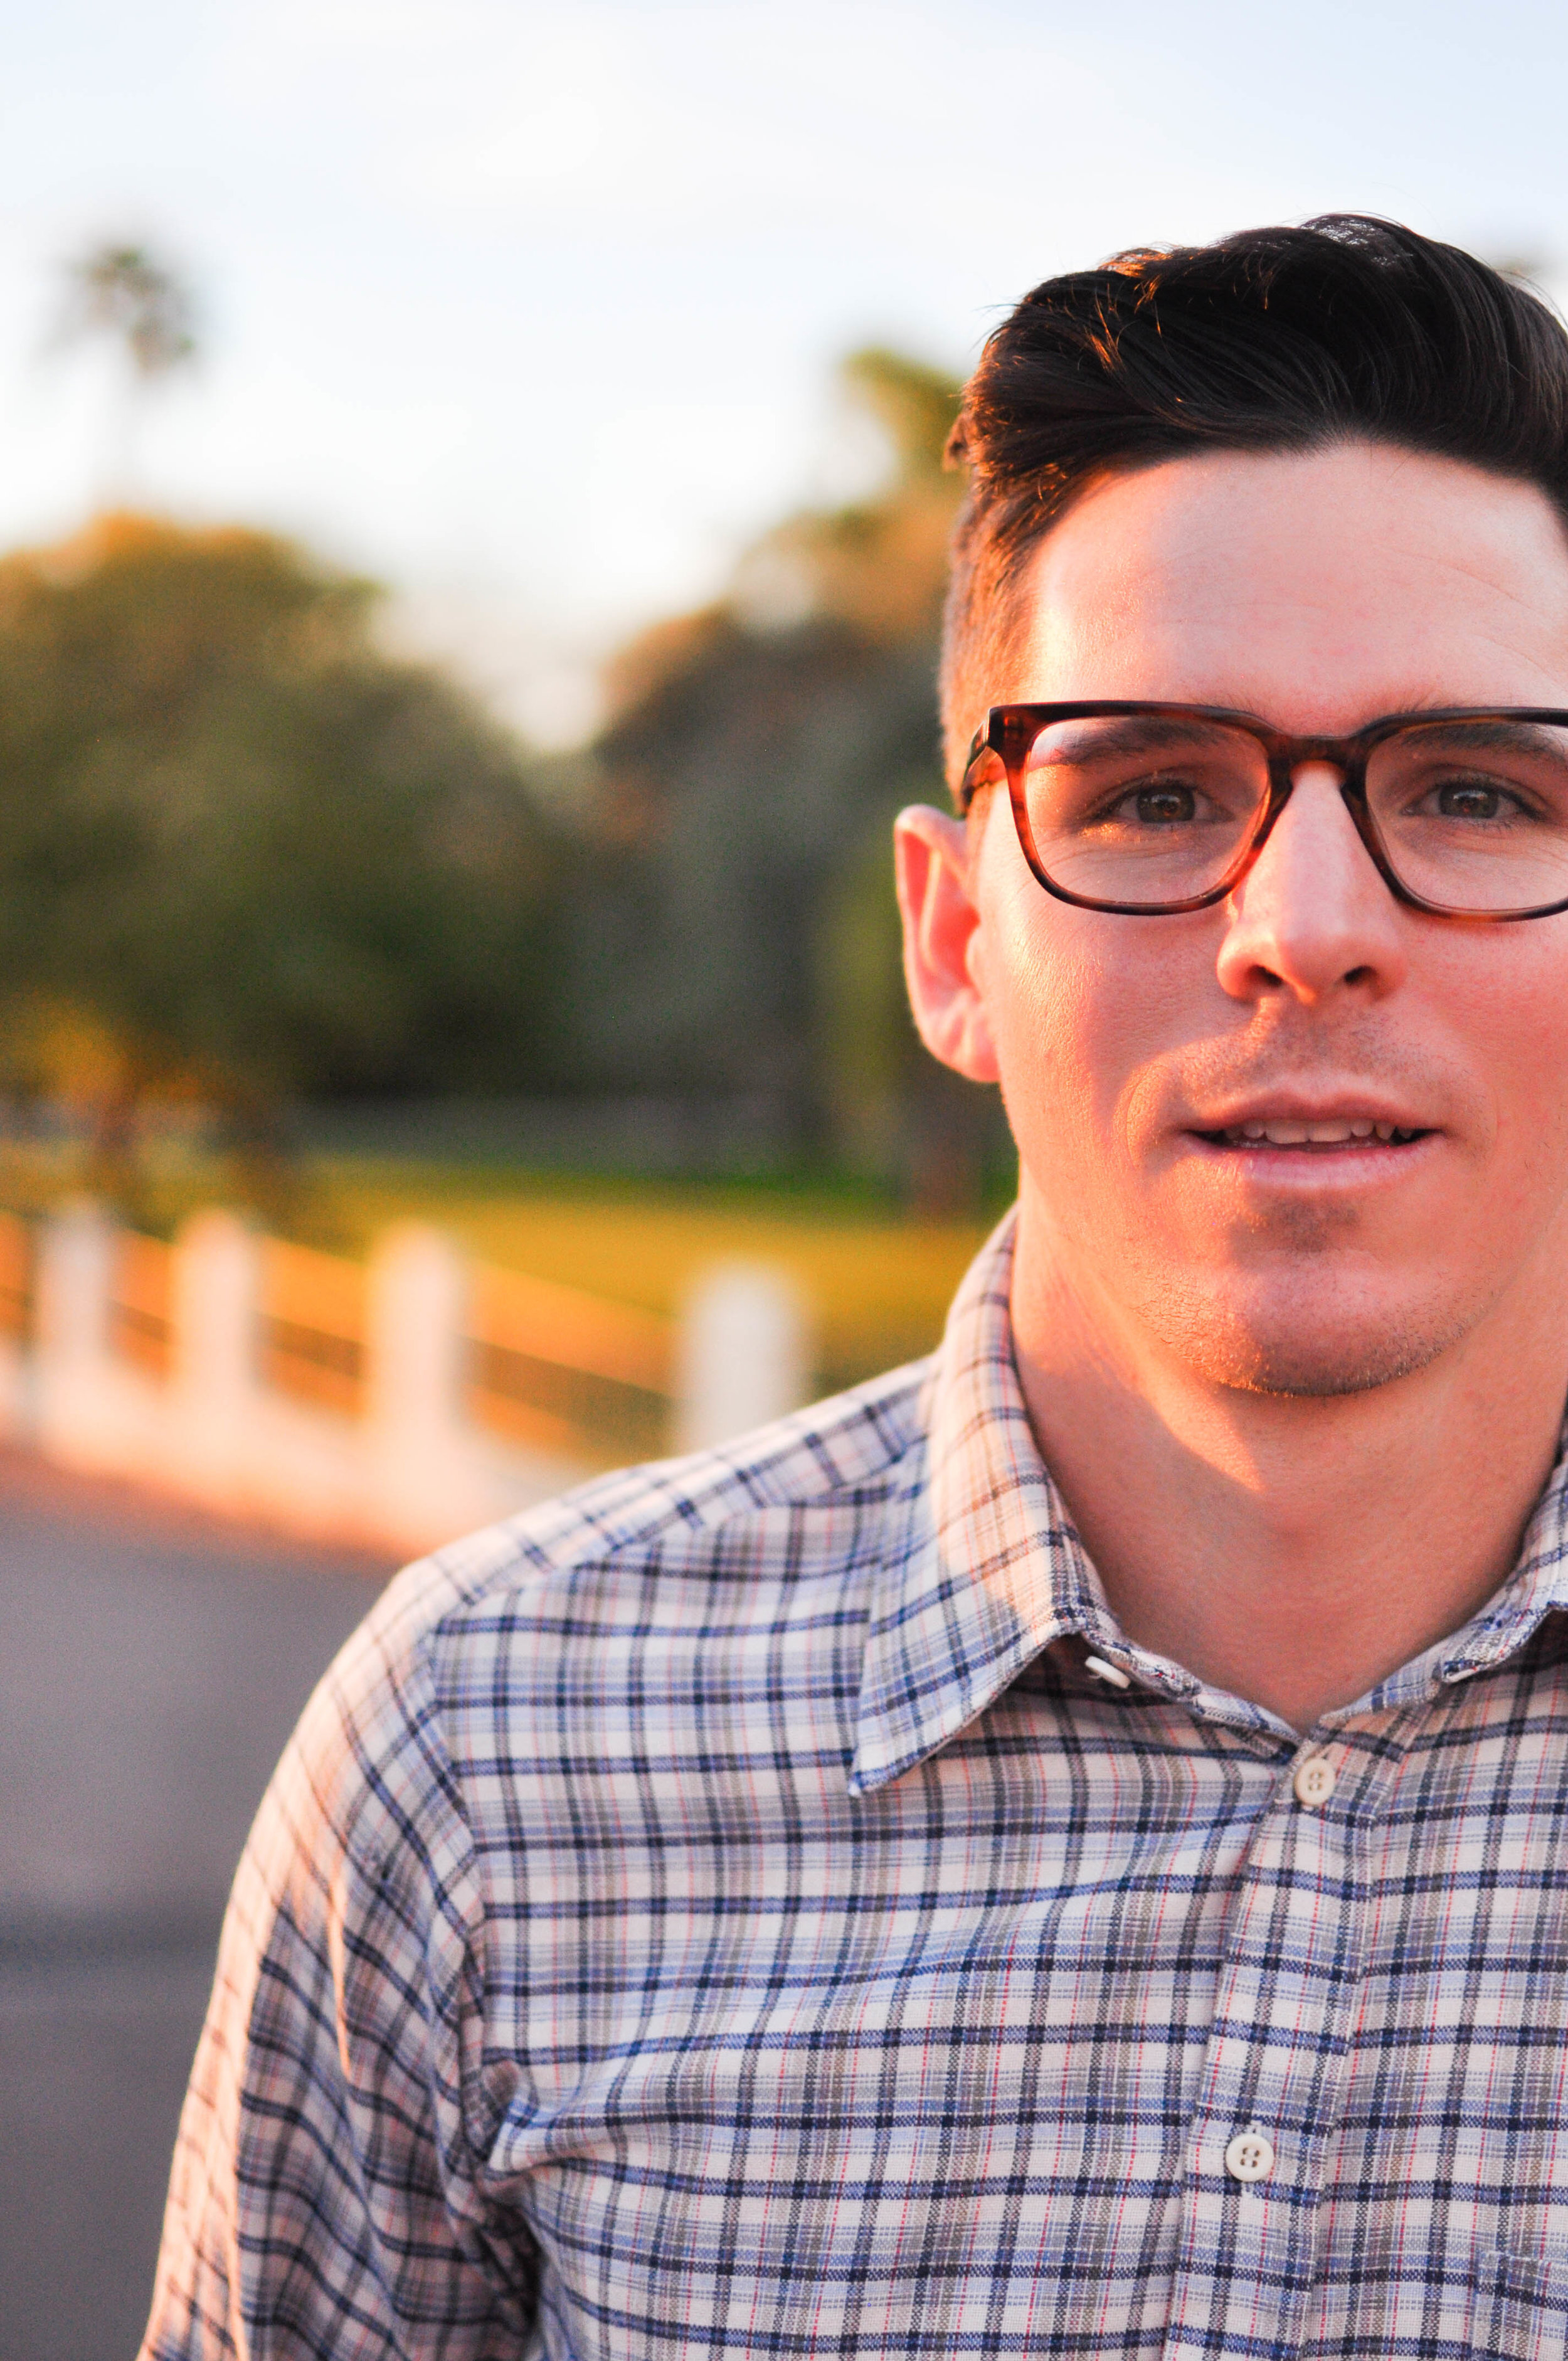 Man in glasses and plaid shirt